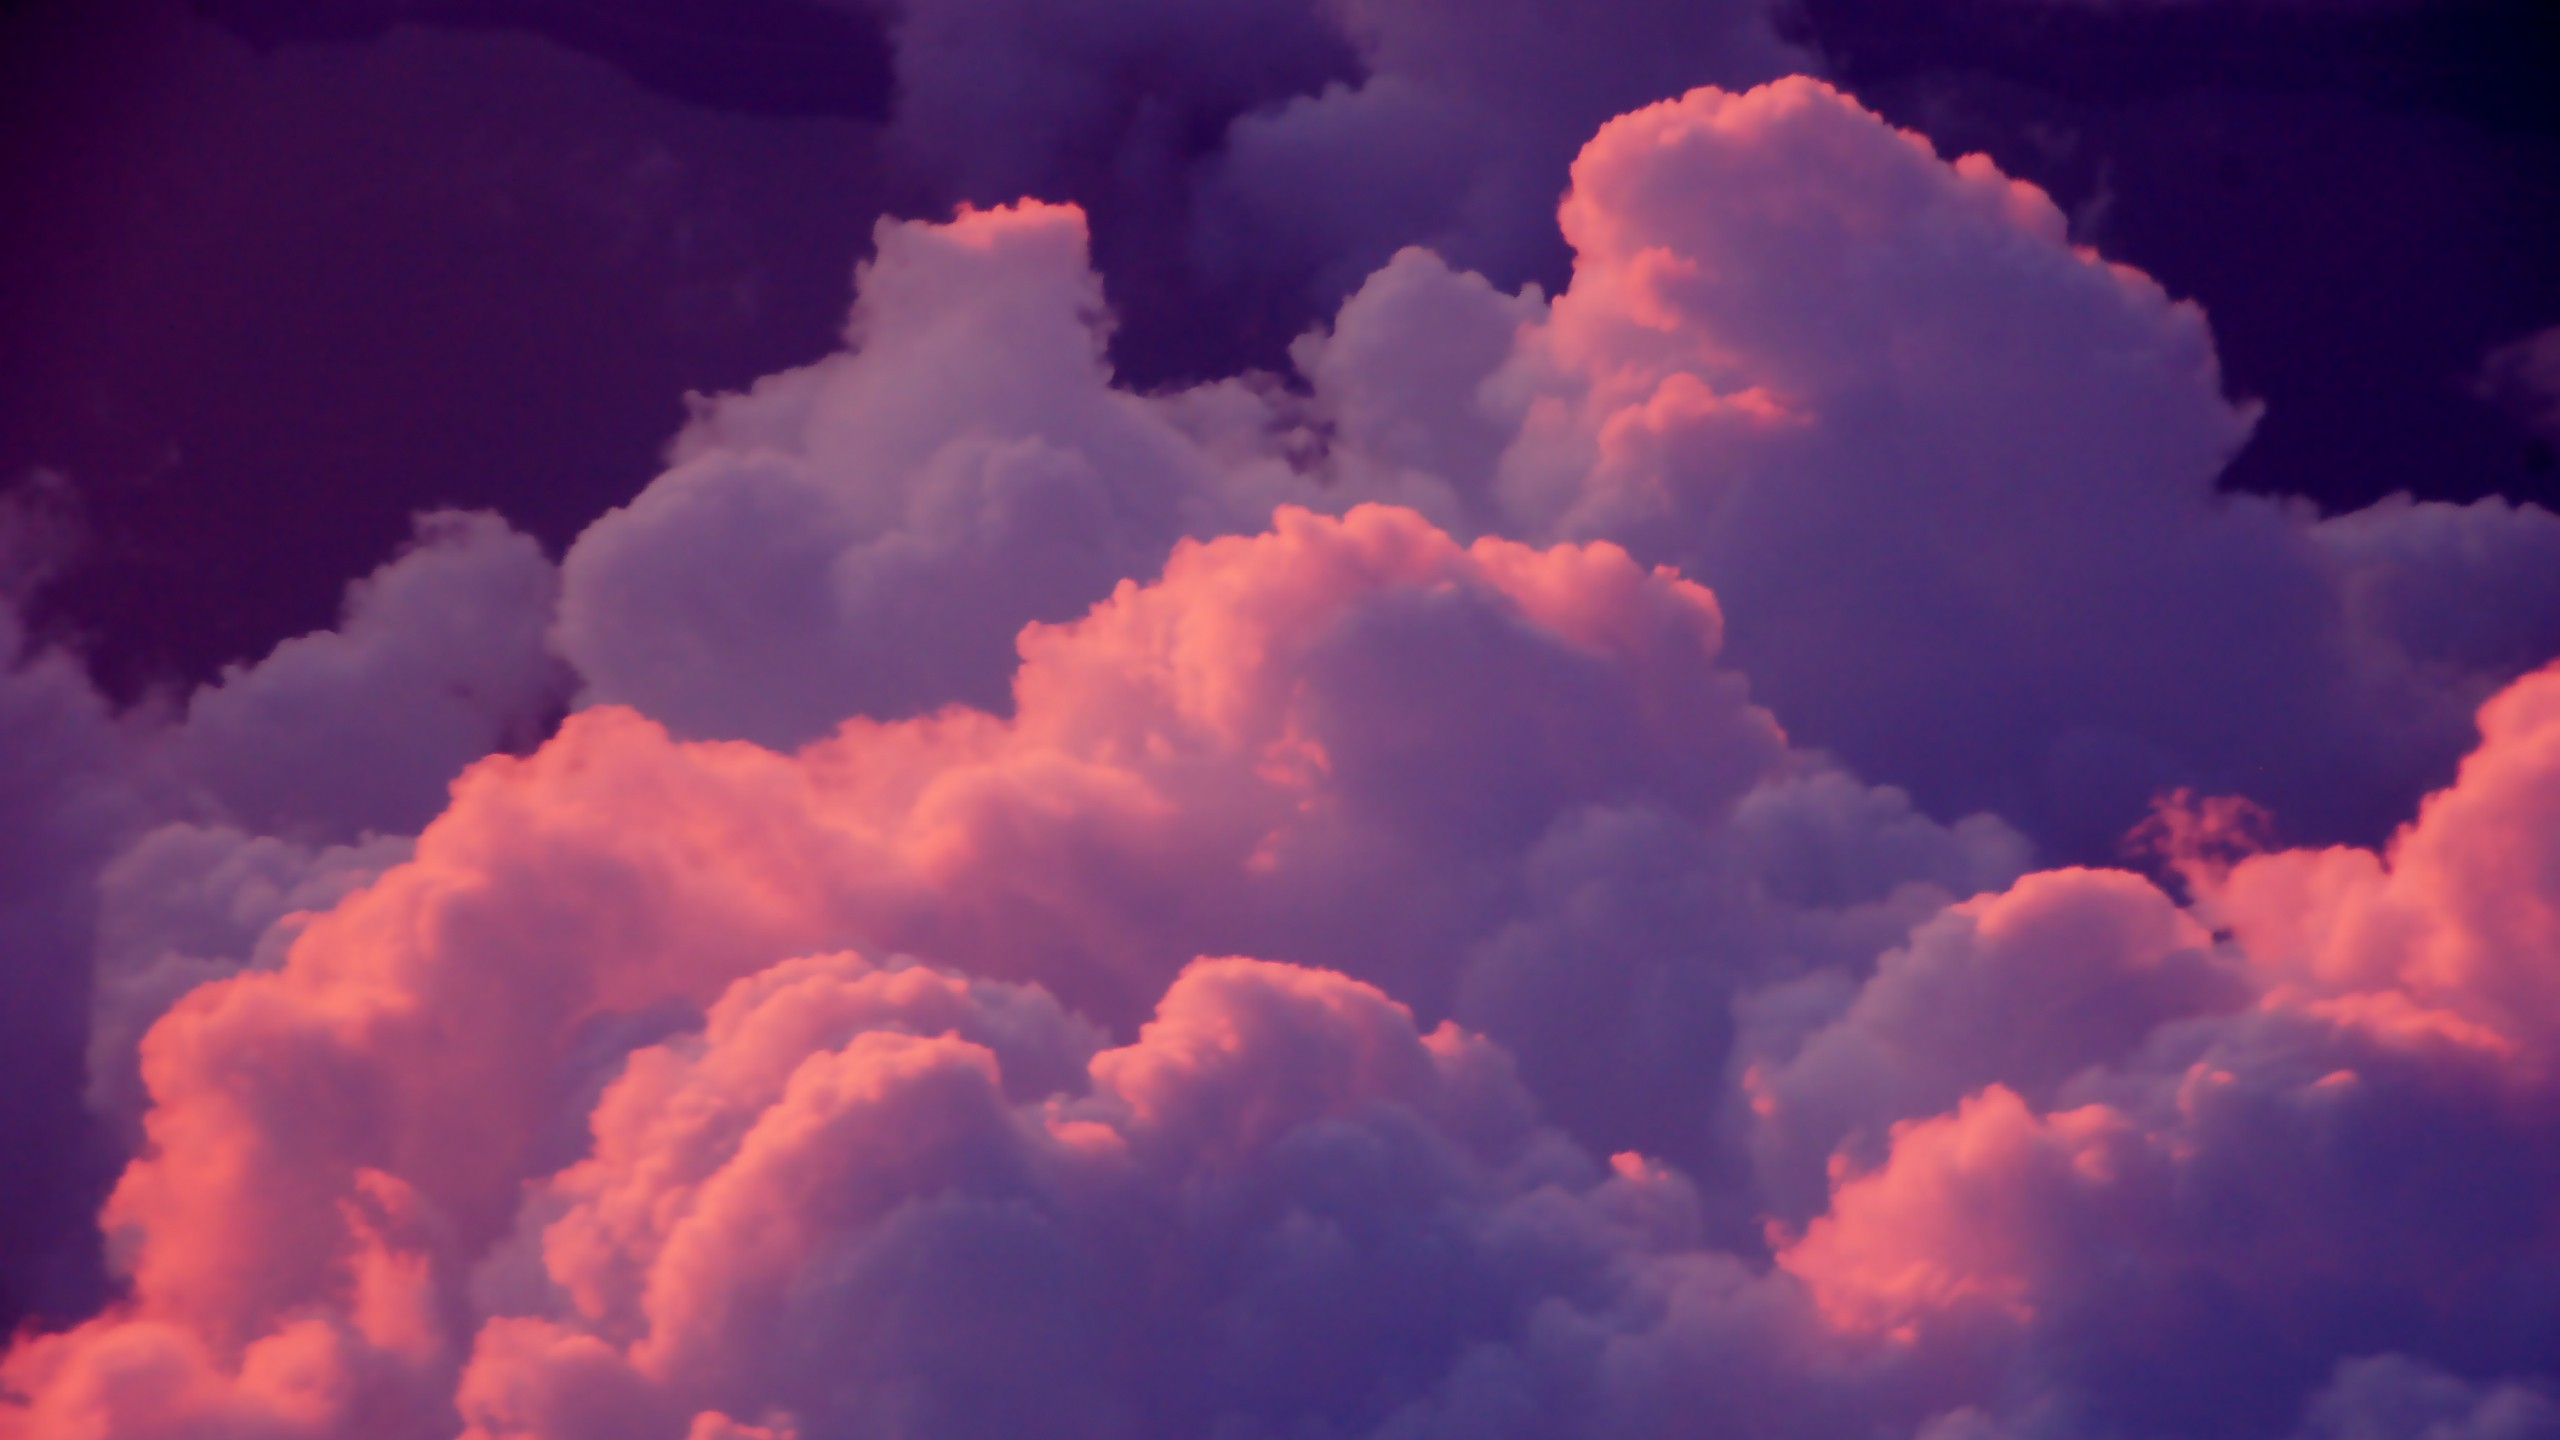 Pink and purple clouds x post rWQHD wallpaper [2560x1440] iimgur 2560x1440